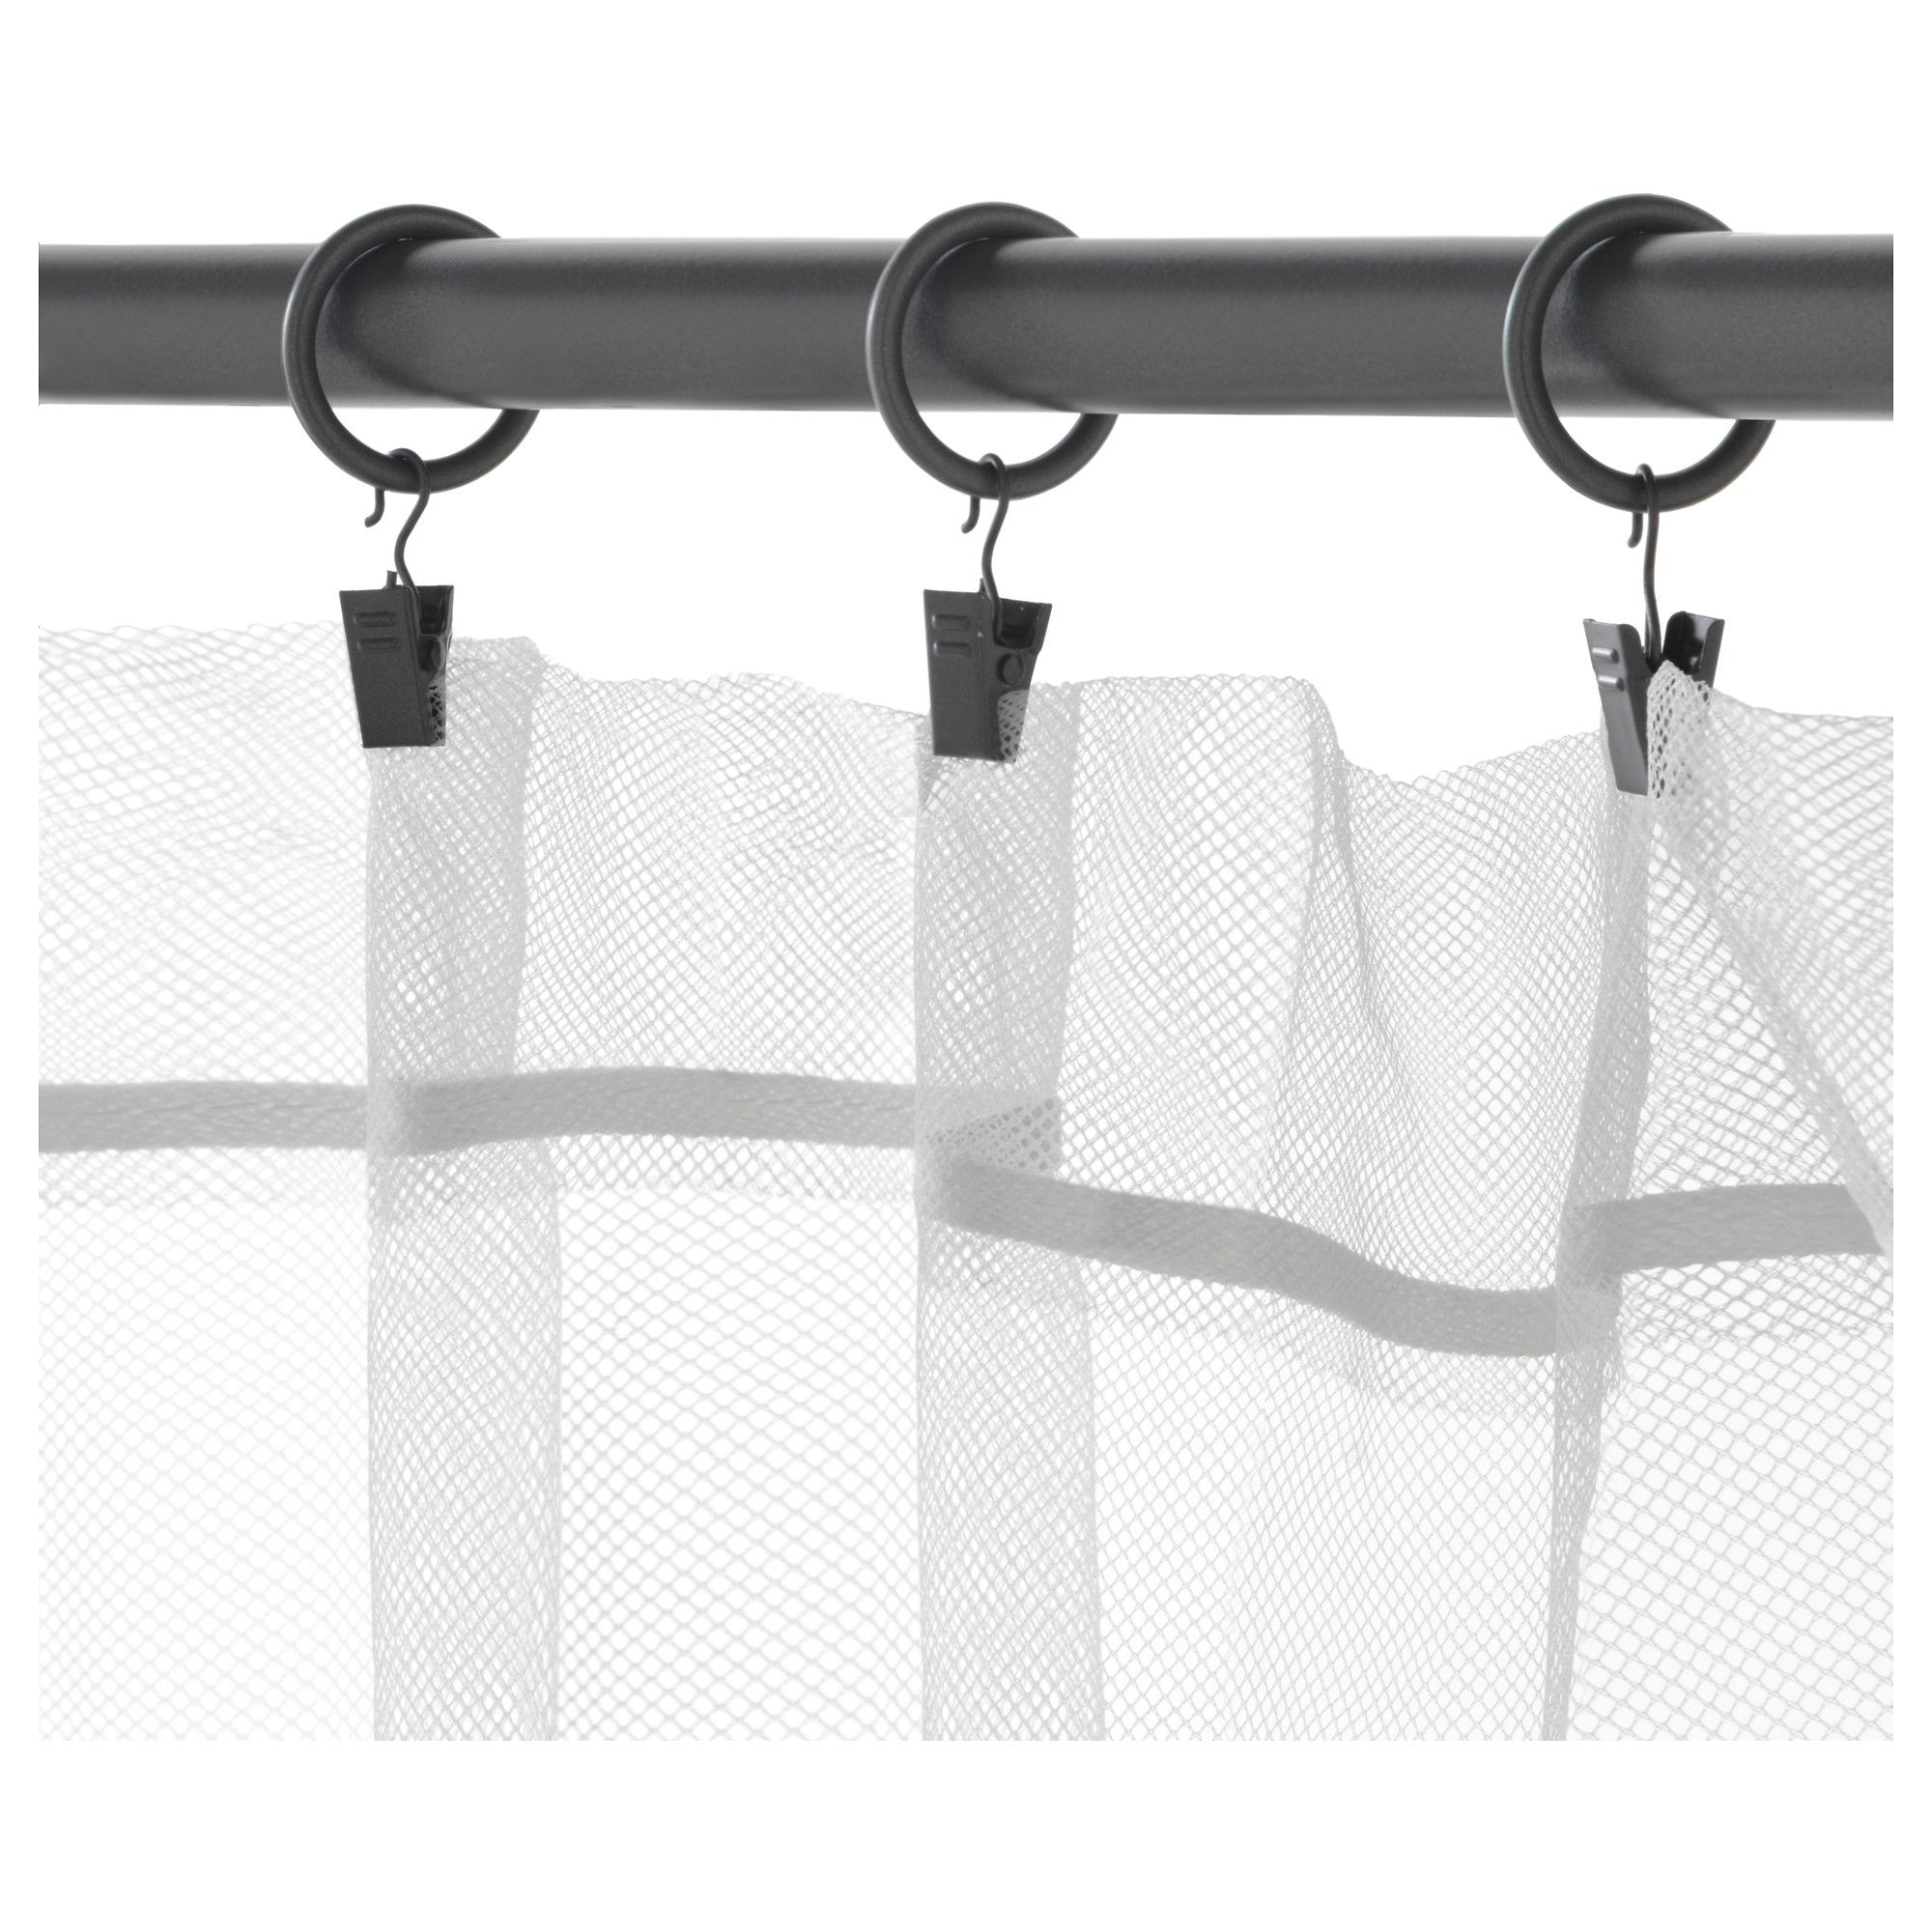 Ikea Syrlig Curtain Ring With Clip And Hook Silver Color Curtains With Rings Curtain Rings With Clips Curtain Clips